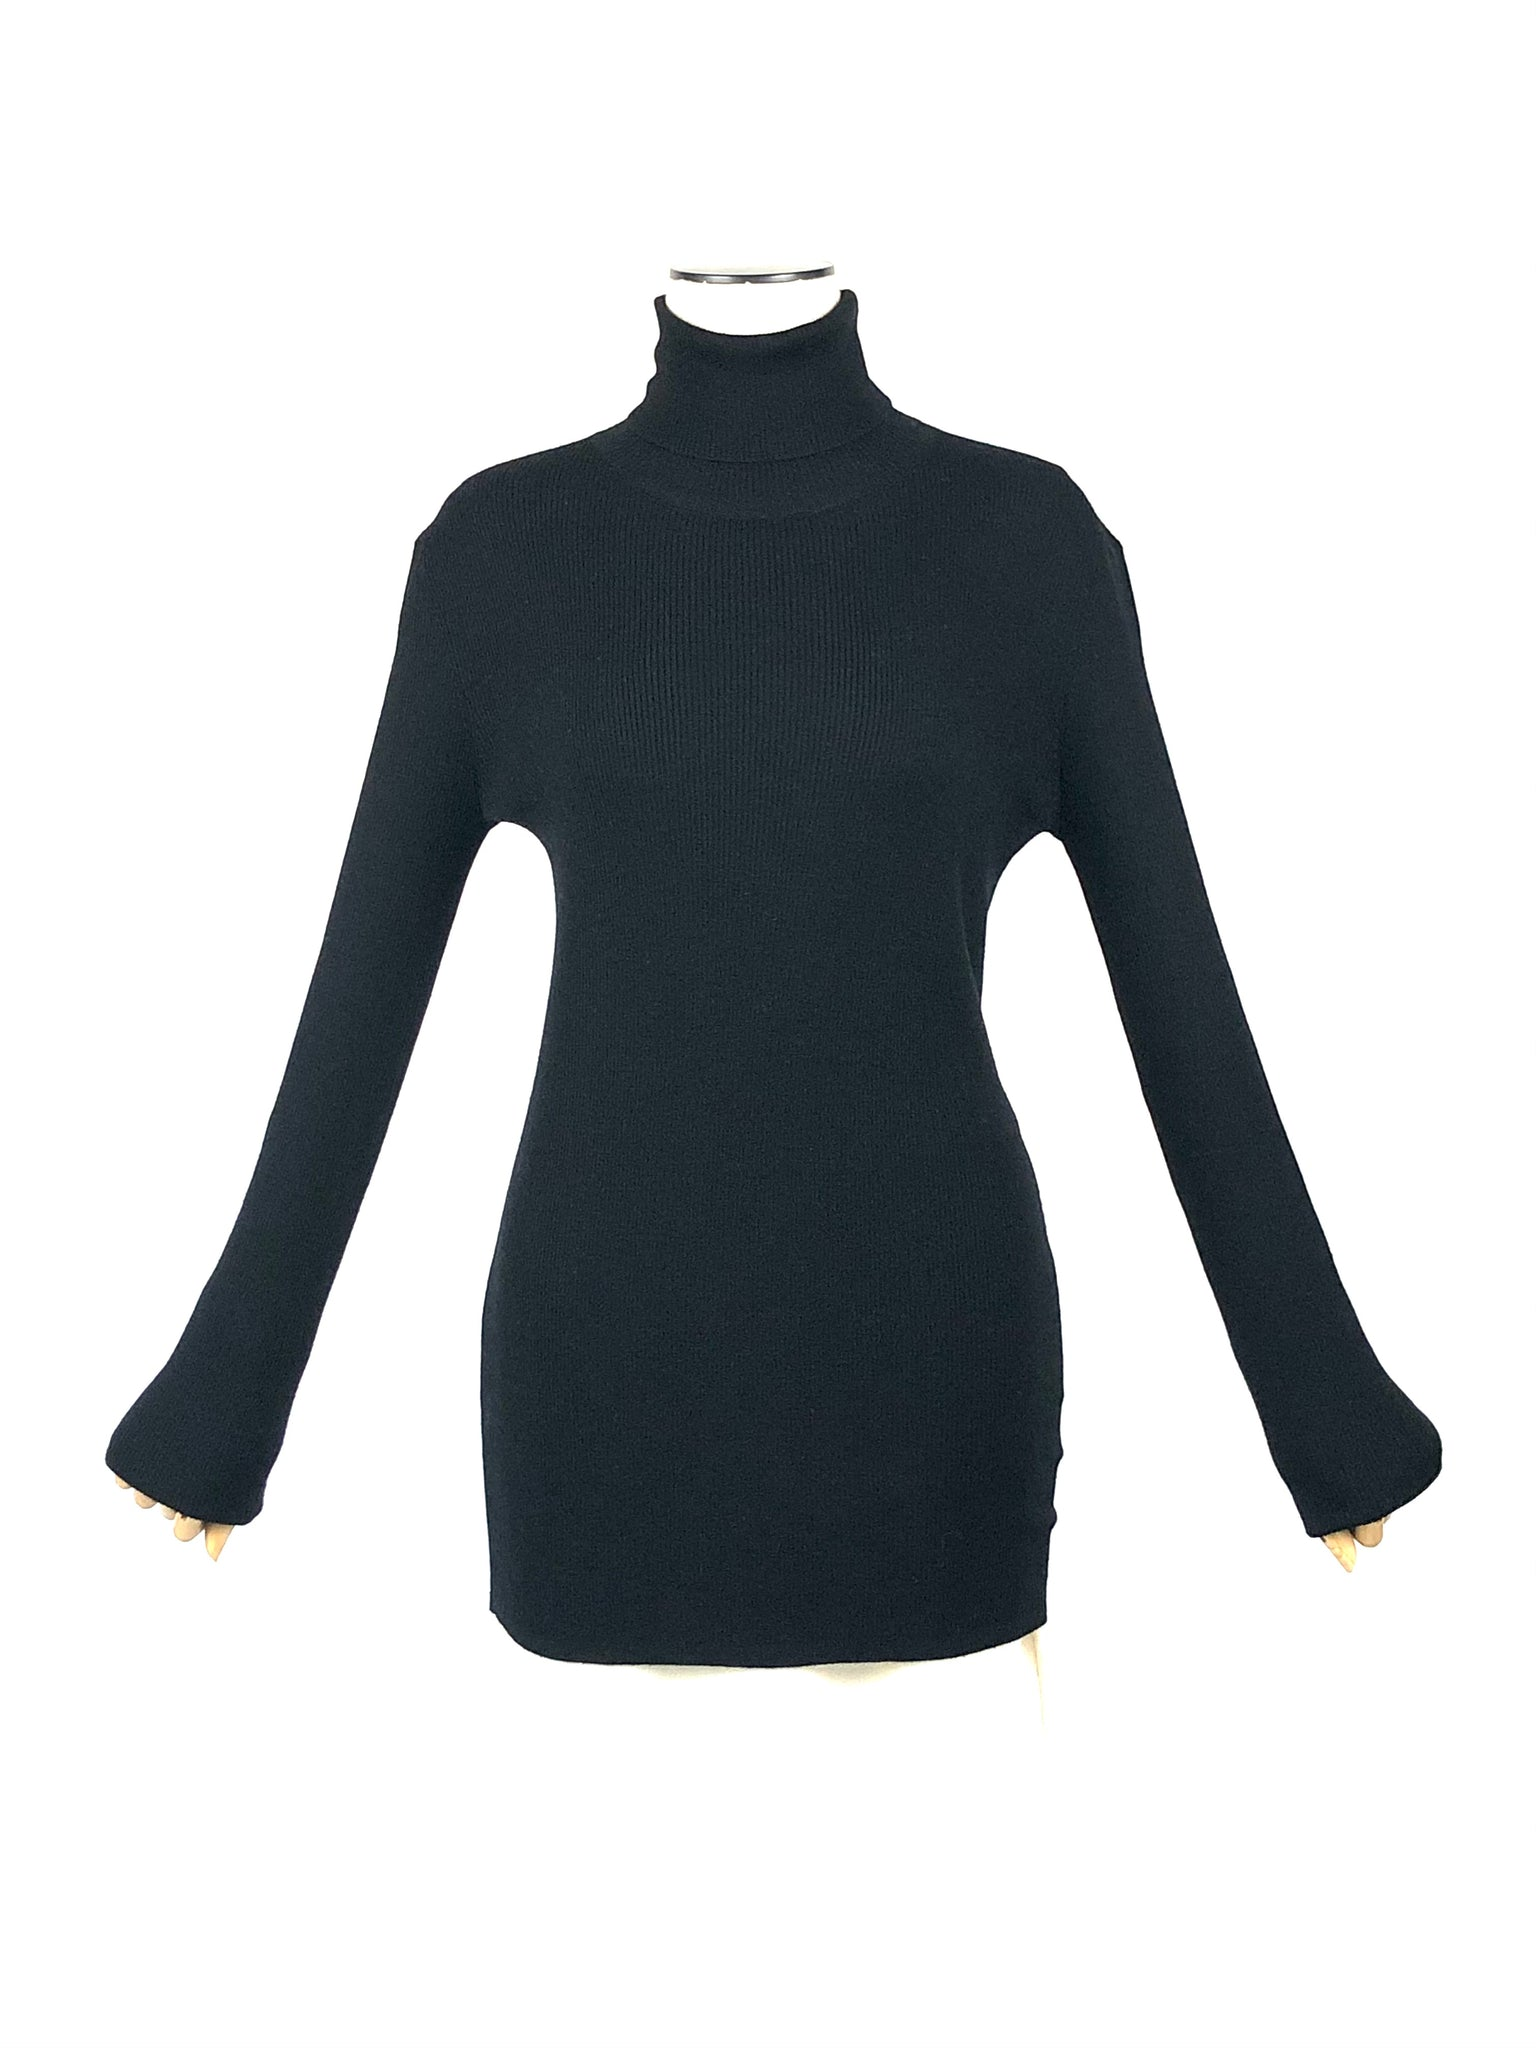 Wool Feather Weight Ribbed Turtleneck Sweater  | Size L